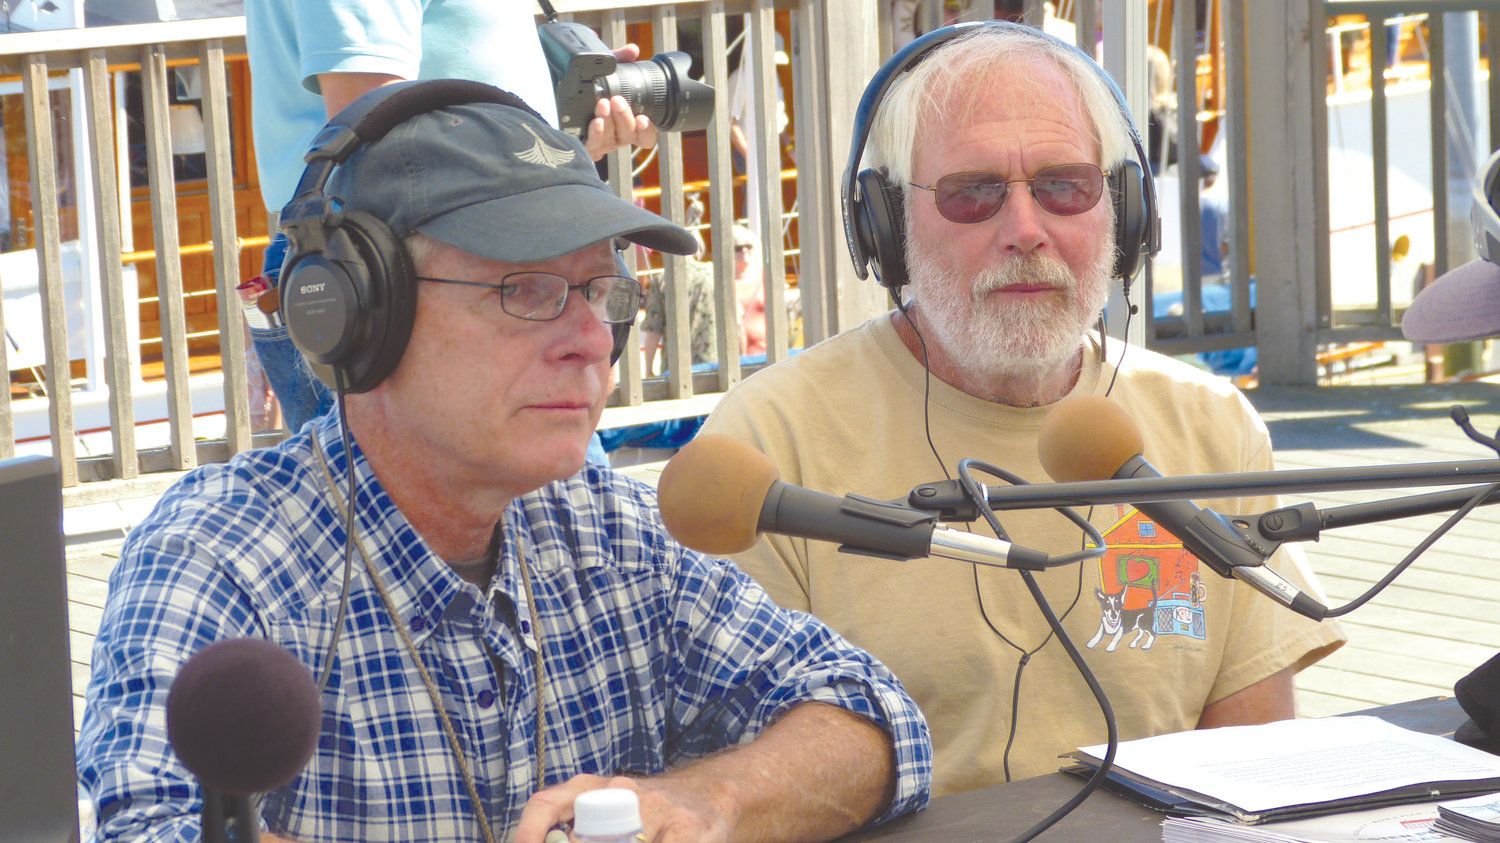 Phil Andrus shared the mic with Peter Guerrero to broadcast from the Wooden Boat Festival in 2015.